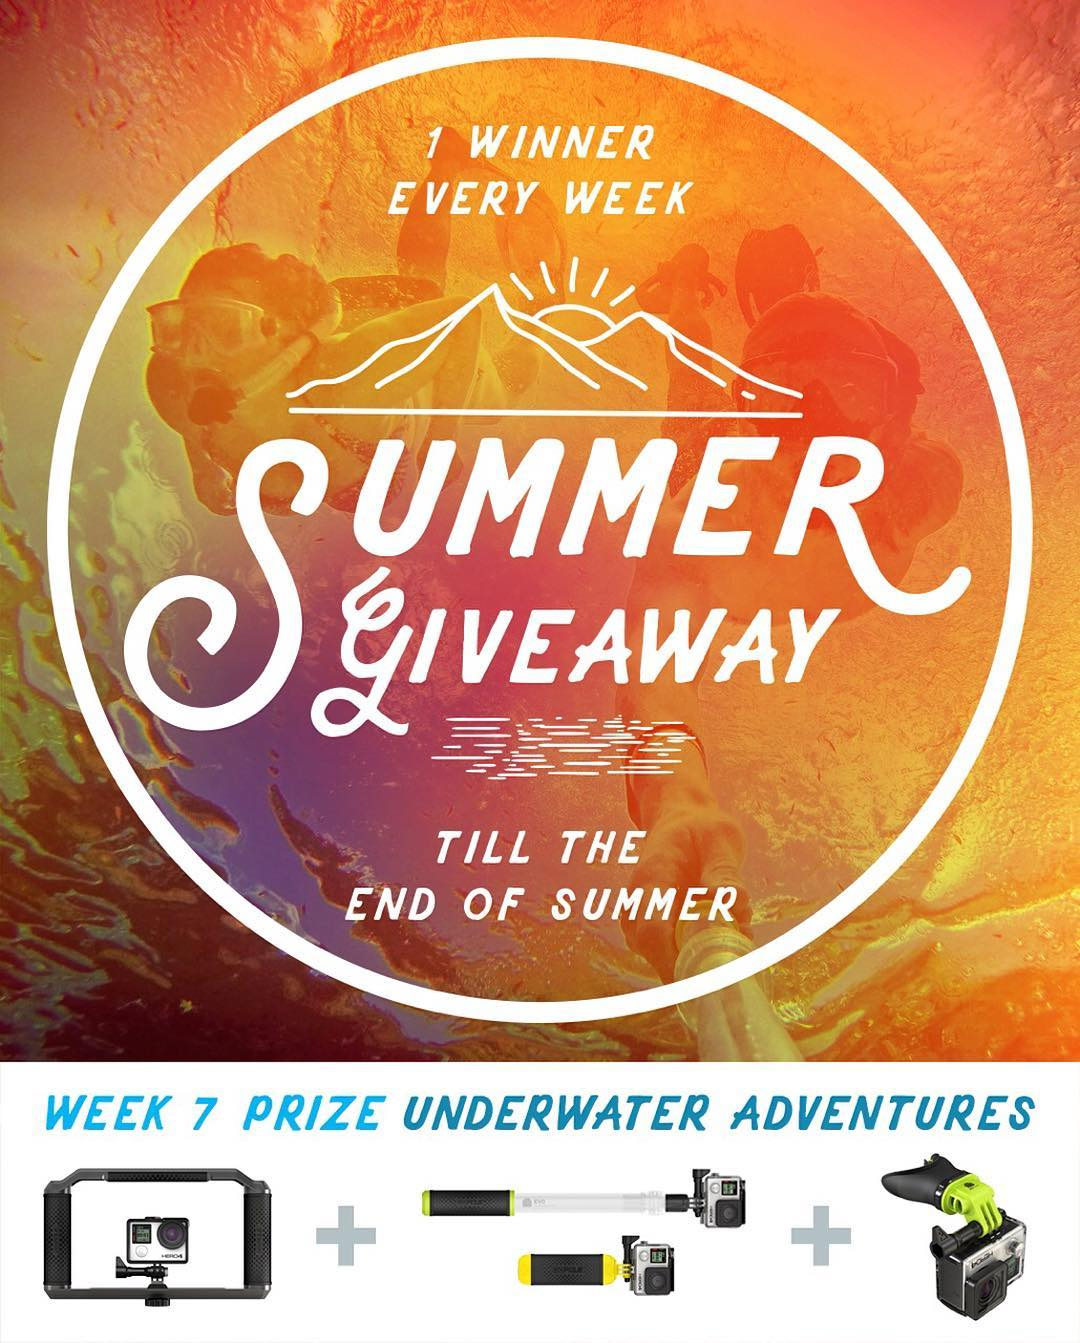 Congrats to week 6 winner, Walter Pickering from York Harbor, ME. GoPole Summer Giveaway week 7 prize - Underwater Adventures. No purchase necessary, enter once or enter every day to increase your changes of winning. Enter now by clicking the link in...